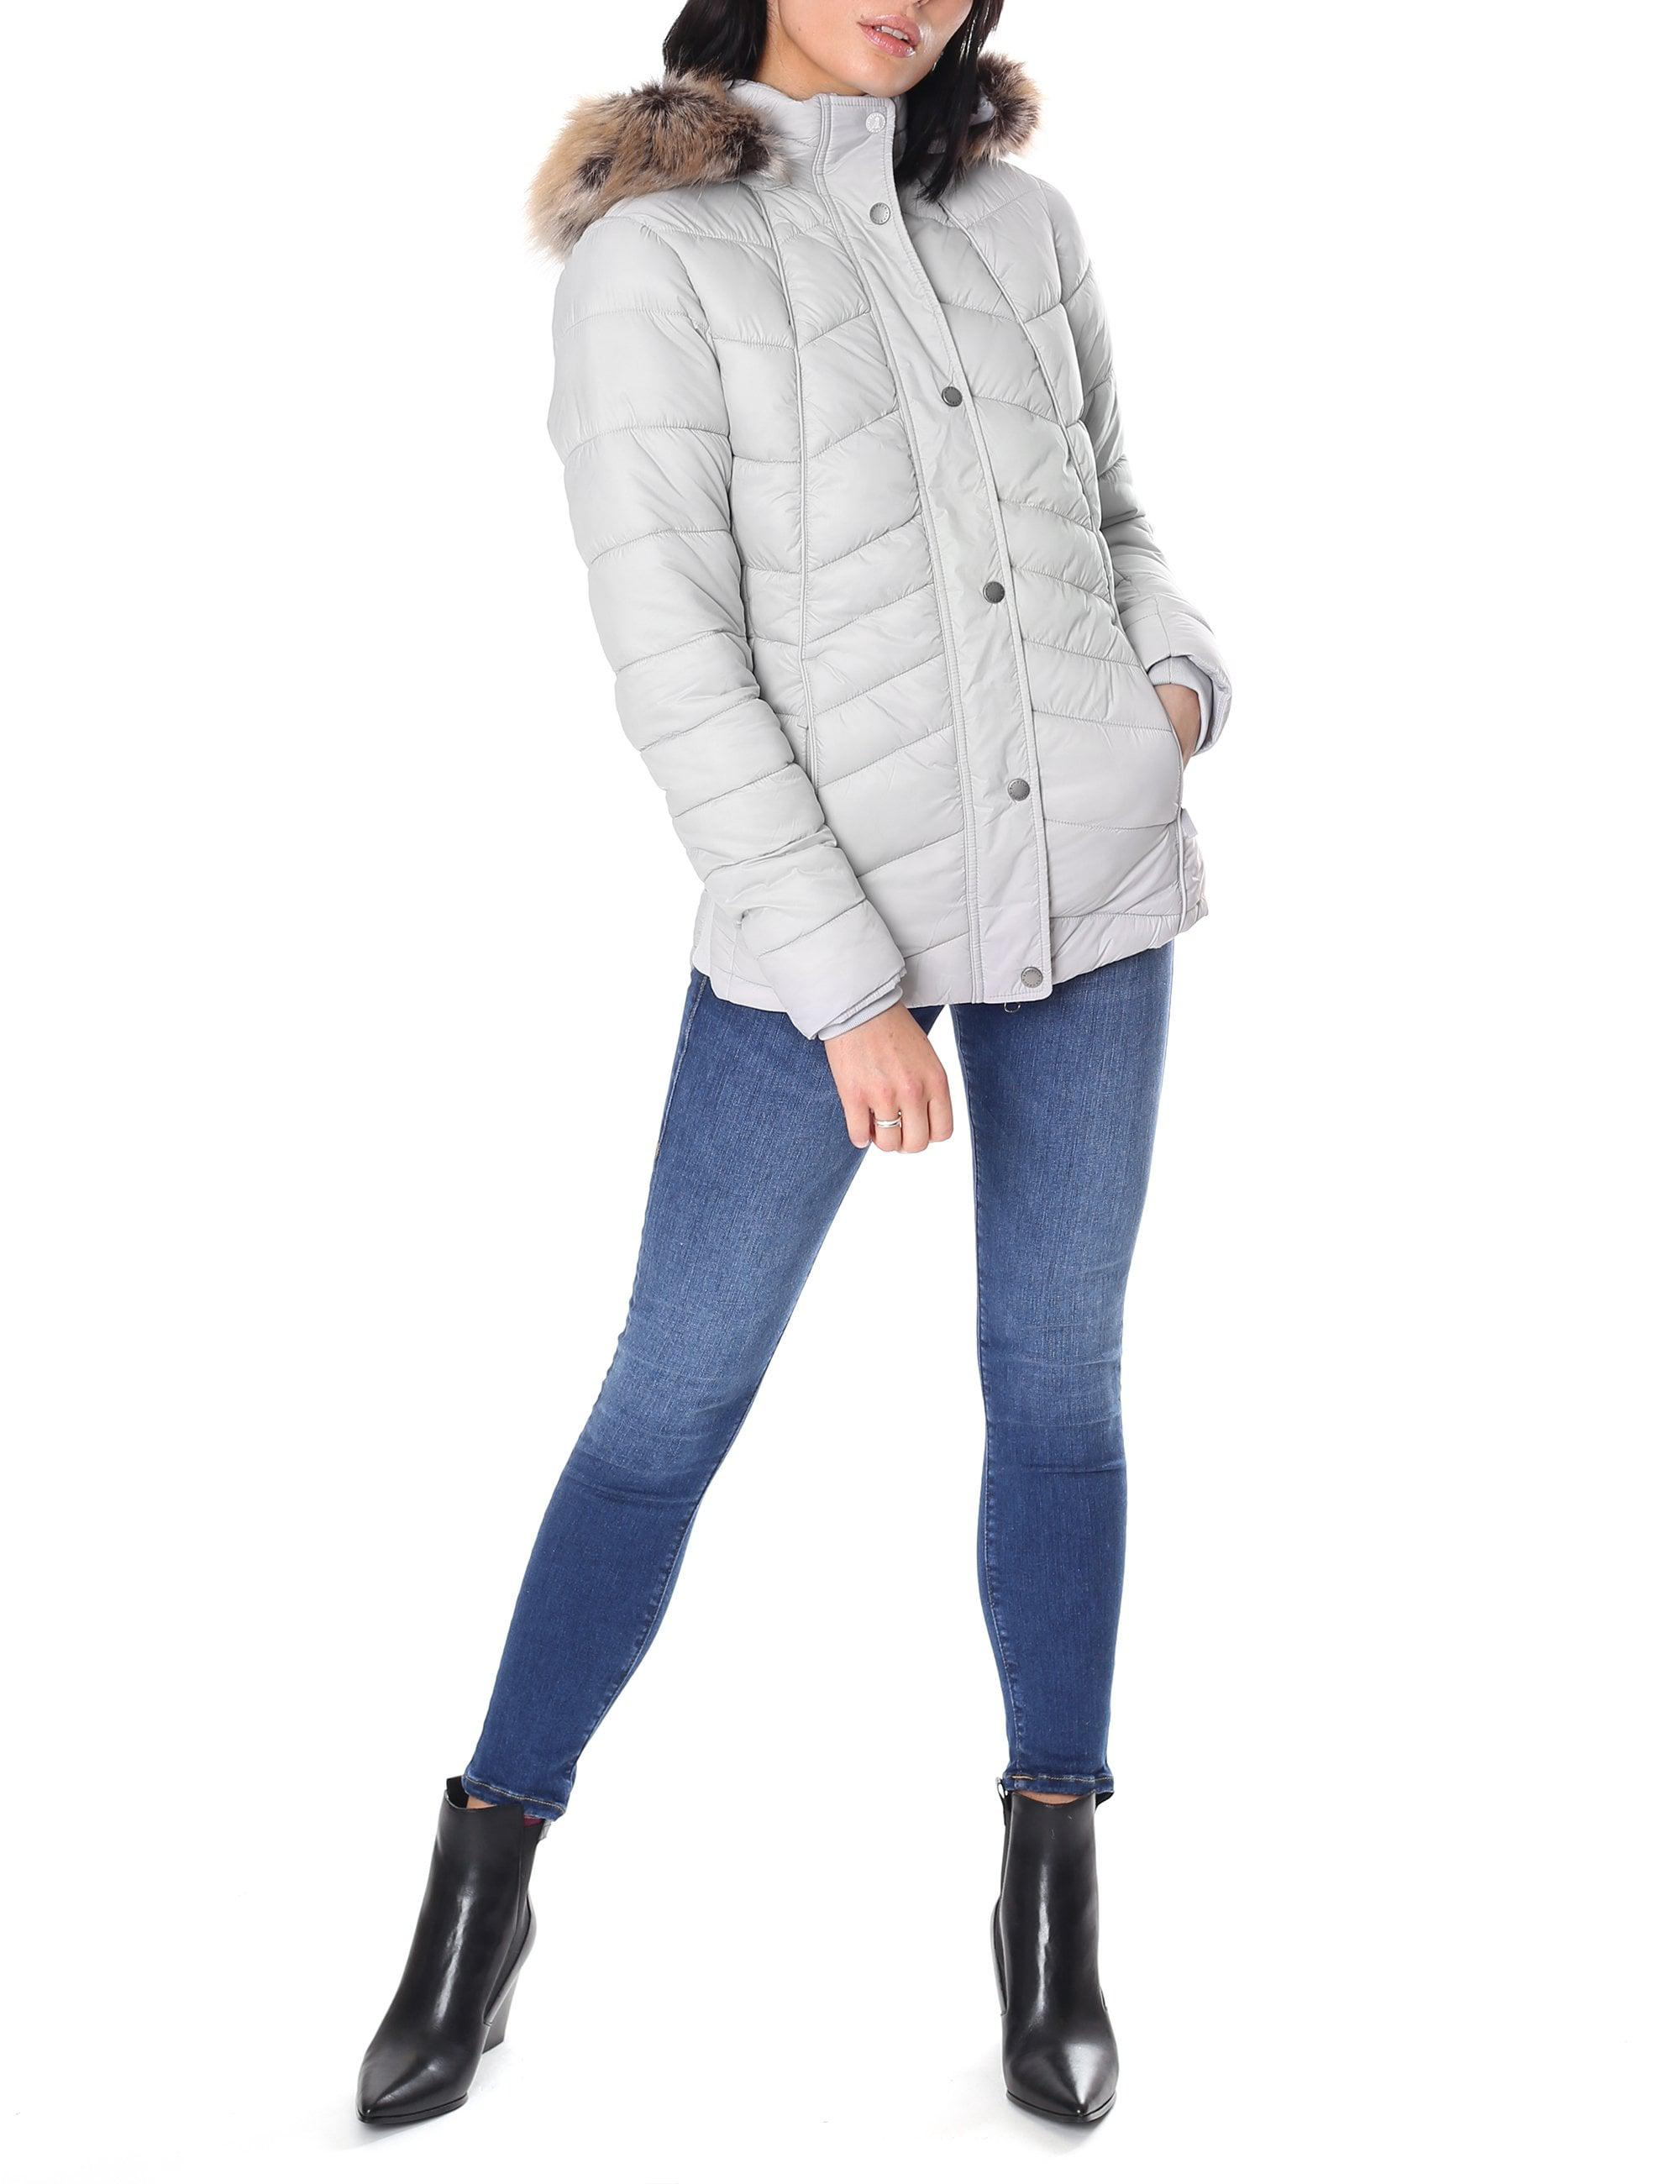 6258fc8598ea Barbour Women s Bernera Quilt Jacket Ice White in White - Lyst